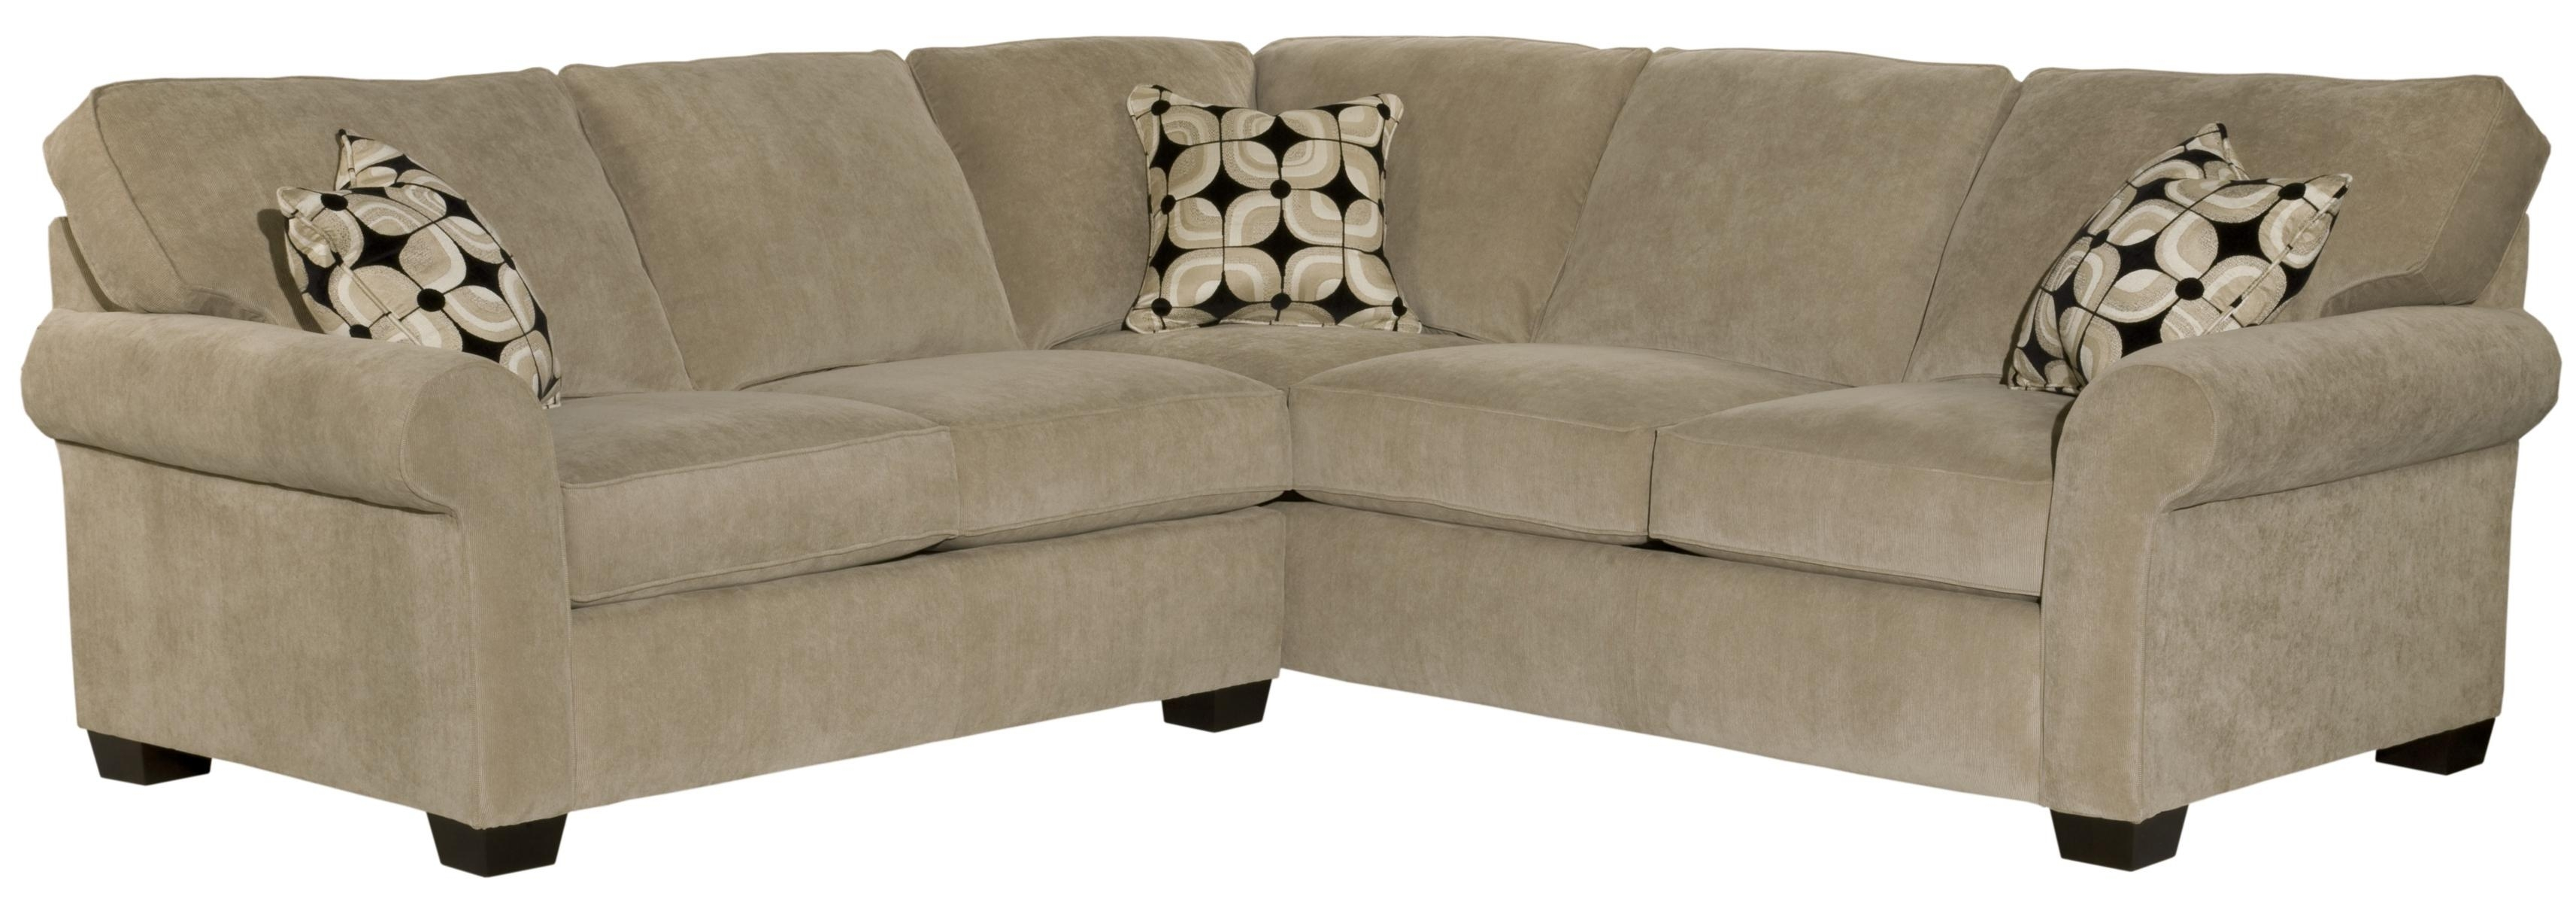 Broyhill Furniture Ethan Two Piece Sectional With Corner Sofa - Ahfa with Sectional Sofas at Broyhill (Image 3 of 15)